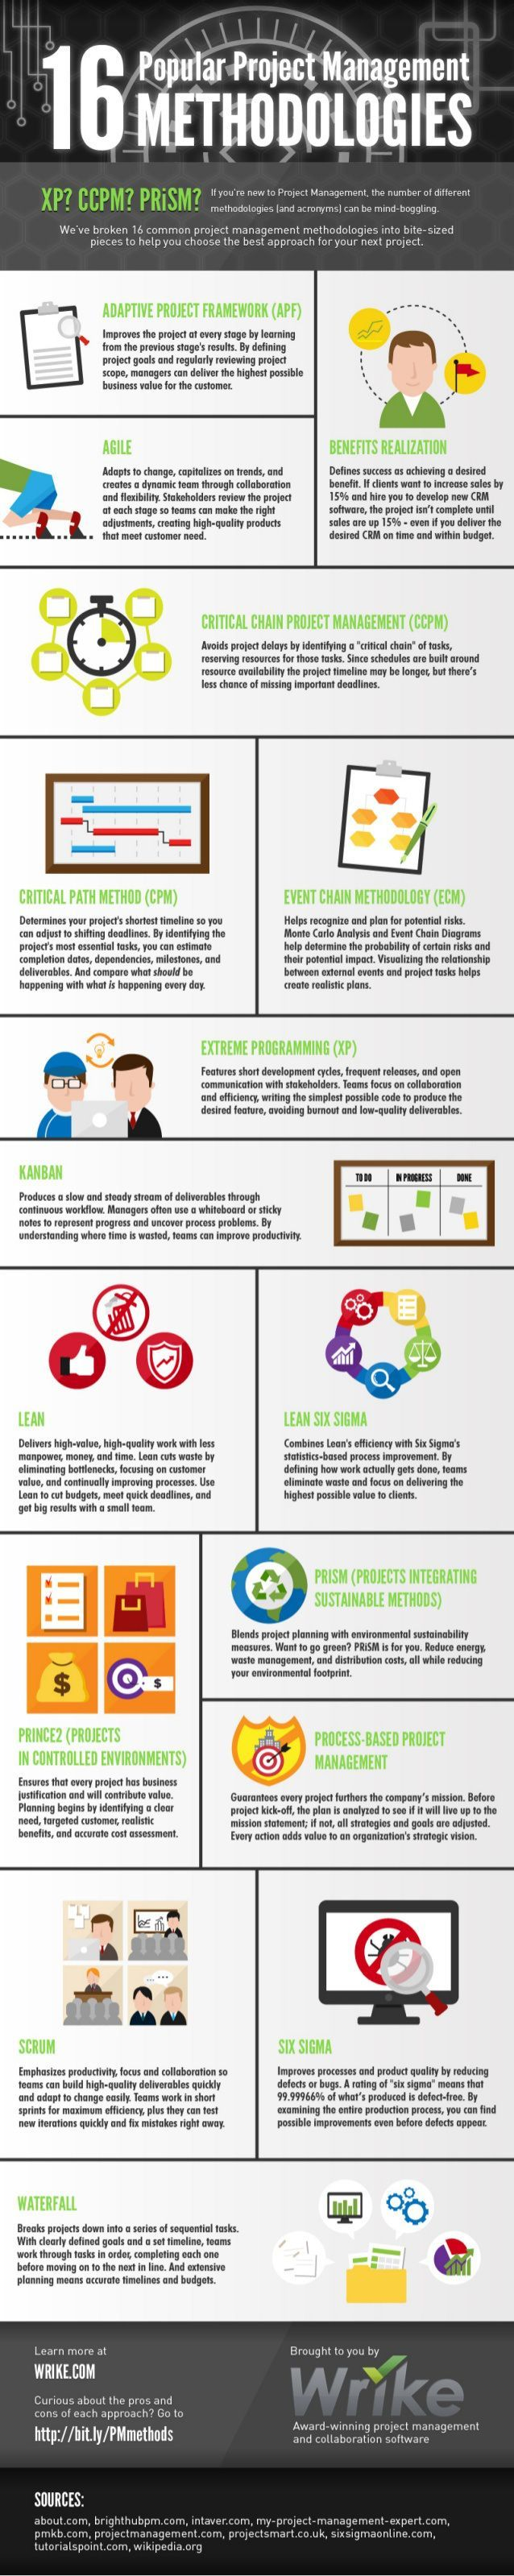 16 Popular project management methodologies #infographic JAMSO supports business through goal setting, KPI Management training and BI solutions #analytics Find out more http://www.jamsovaluesmarter.com